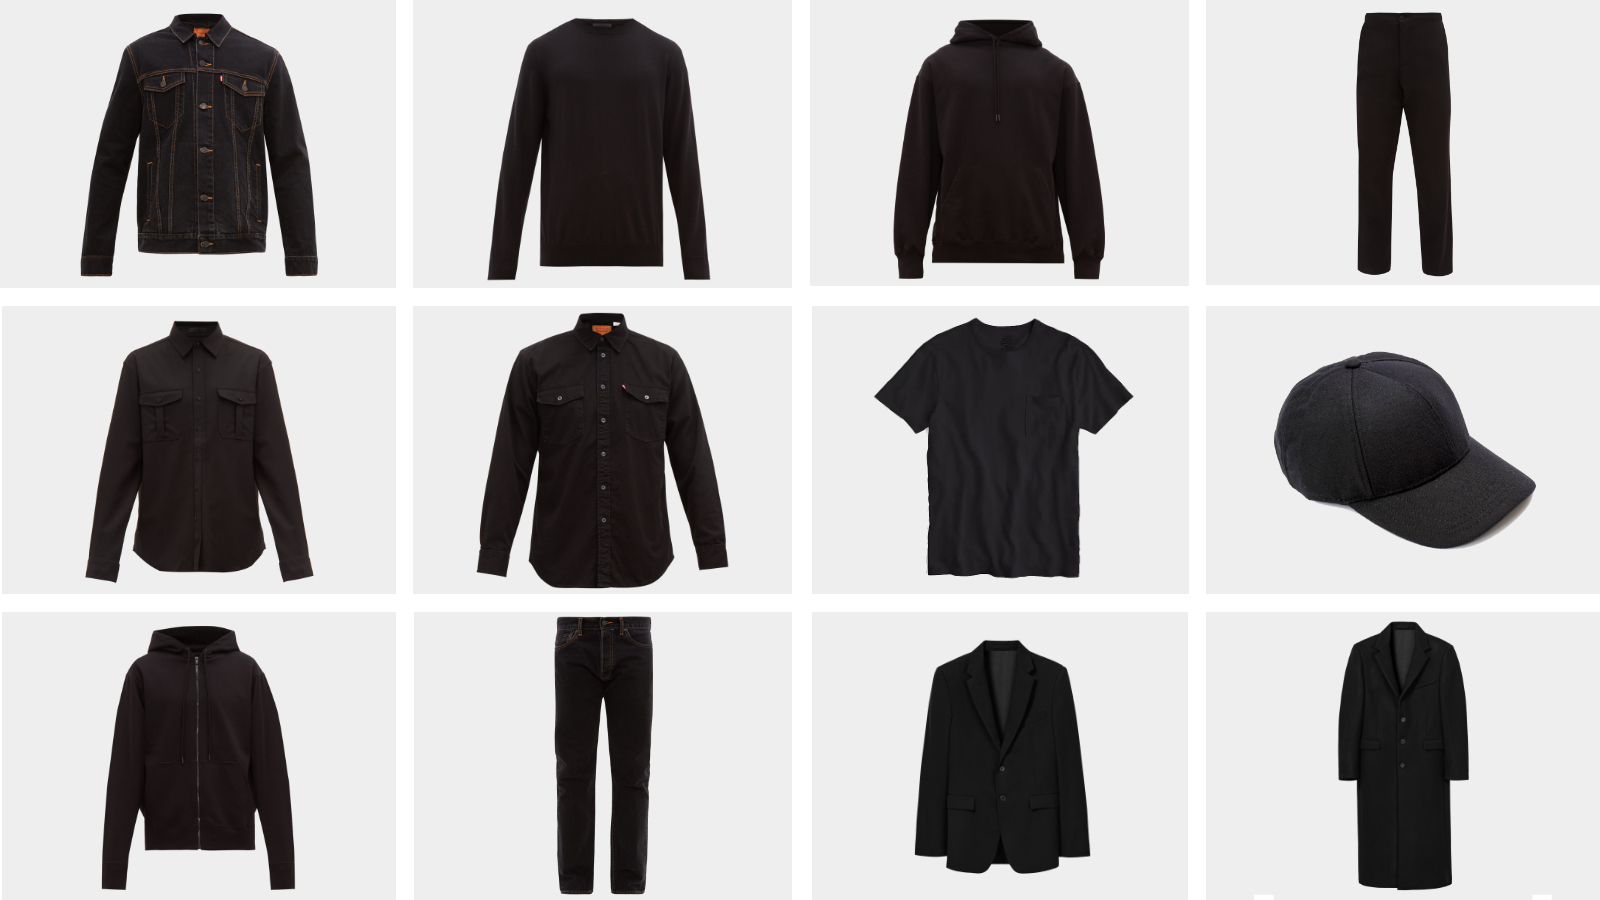 Capsule Wardrobe for Men 2019: How to Reduce your closet to 24 Classic Pieces